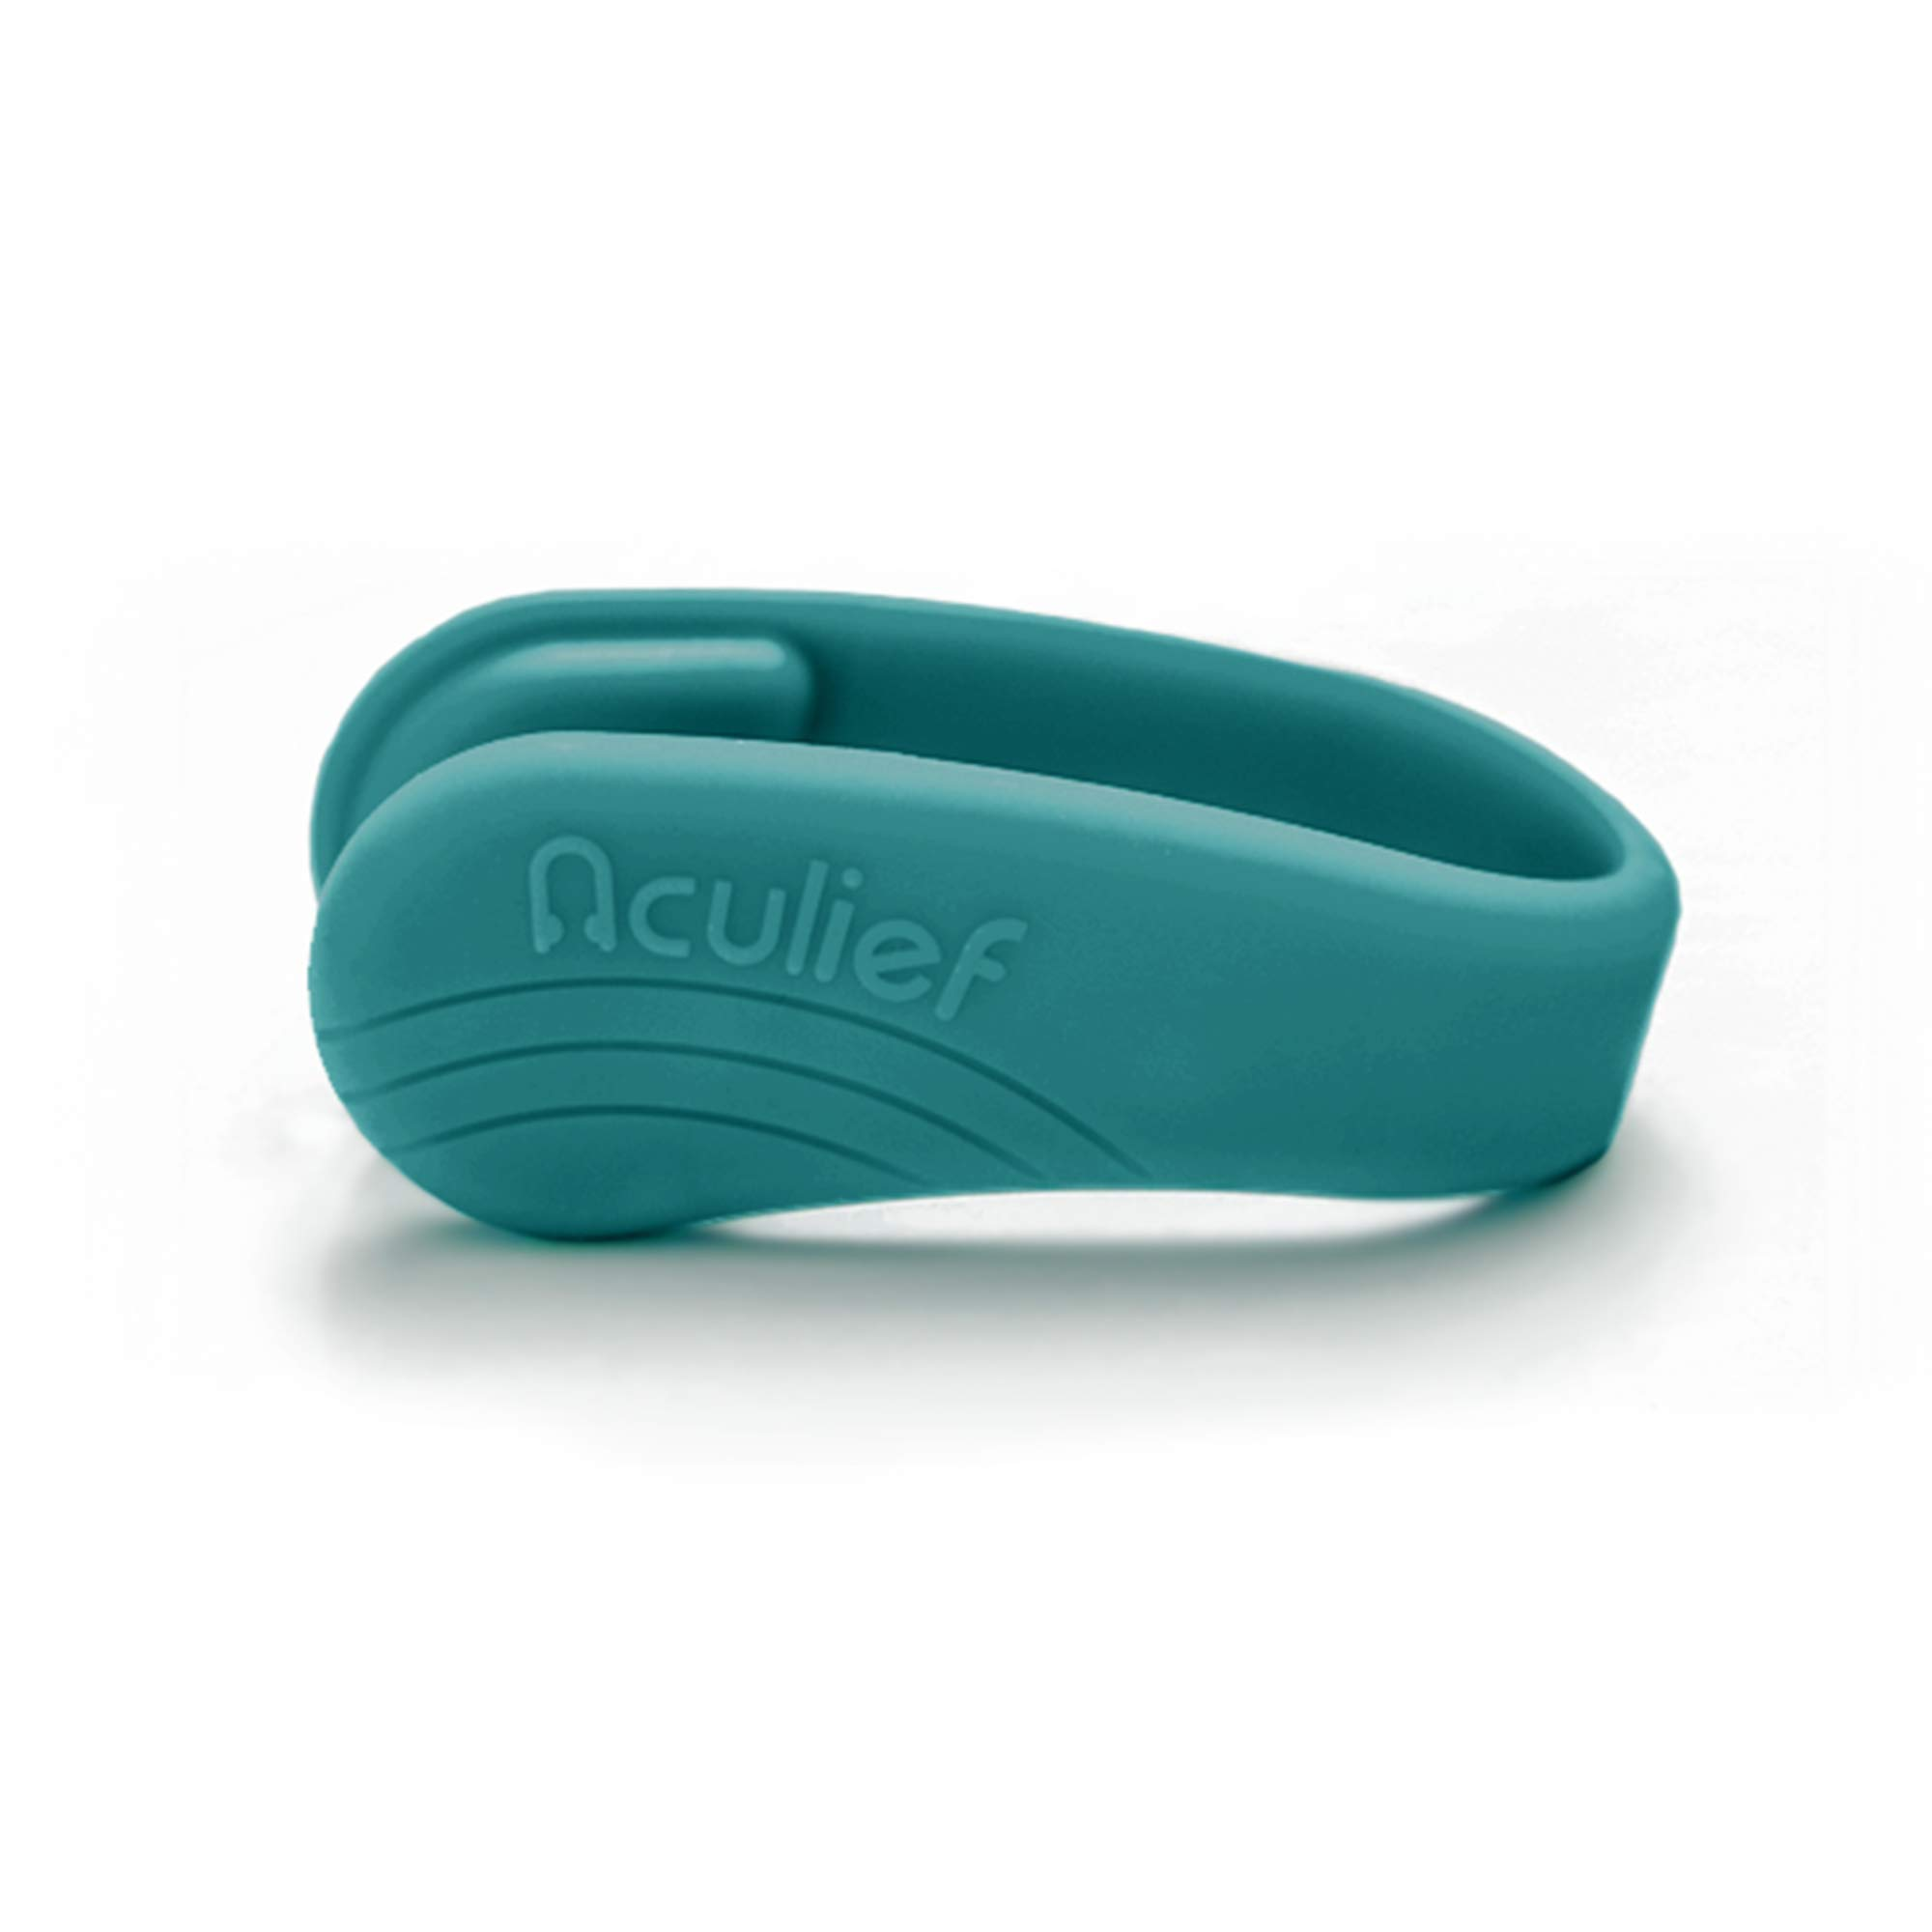 Aculief- Award Winning Natural Headache and Tension Relief - Wearable Acupressure (Teal) by Aculief